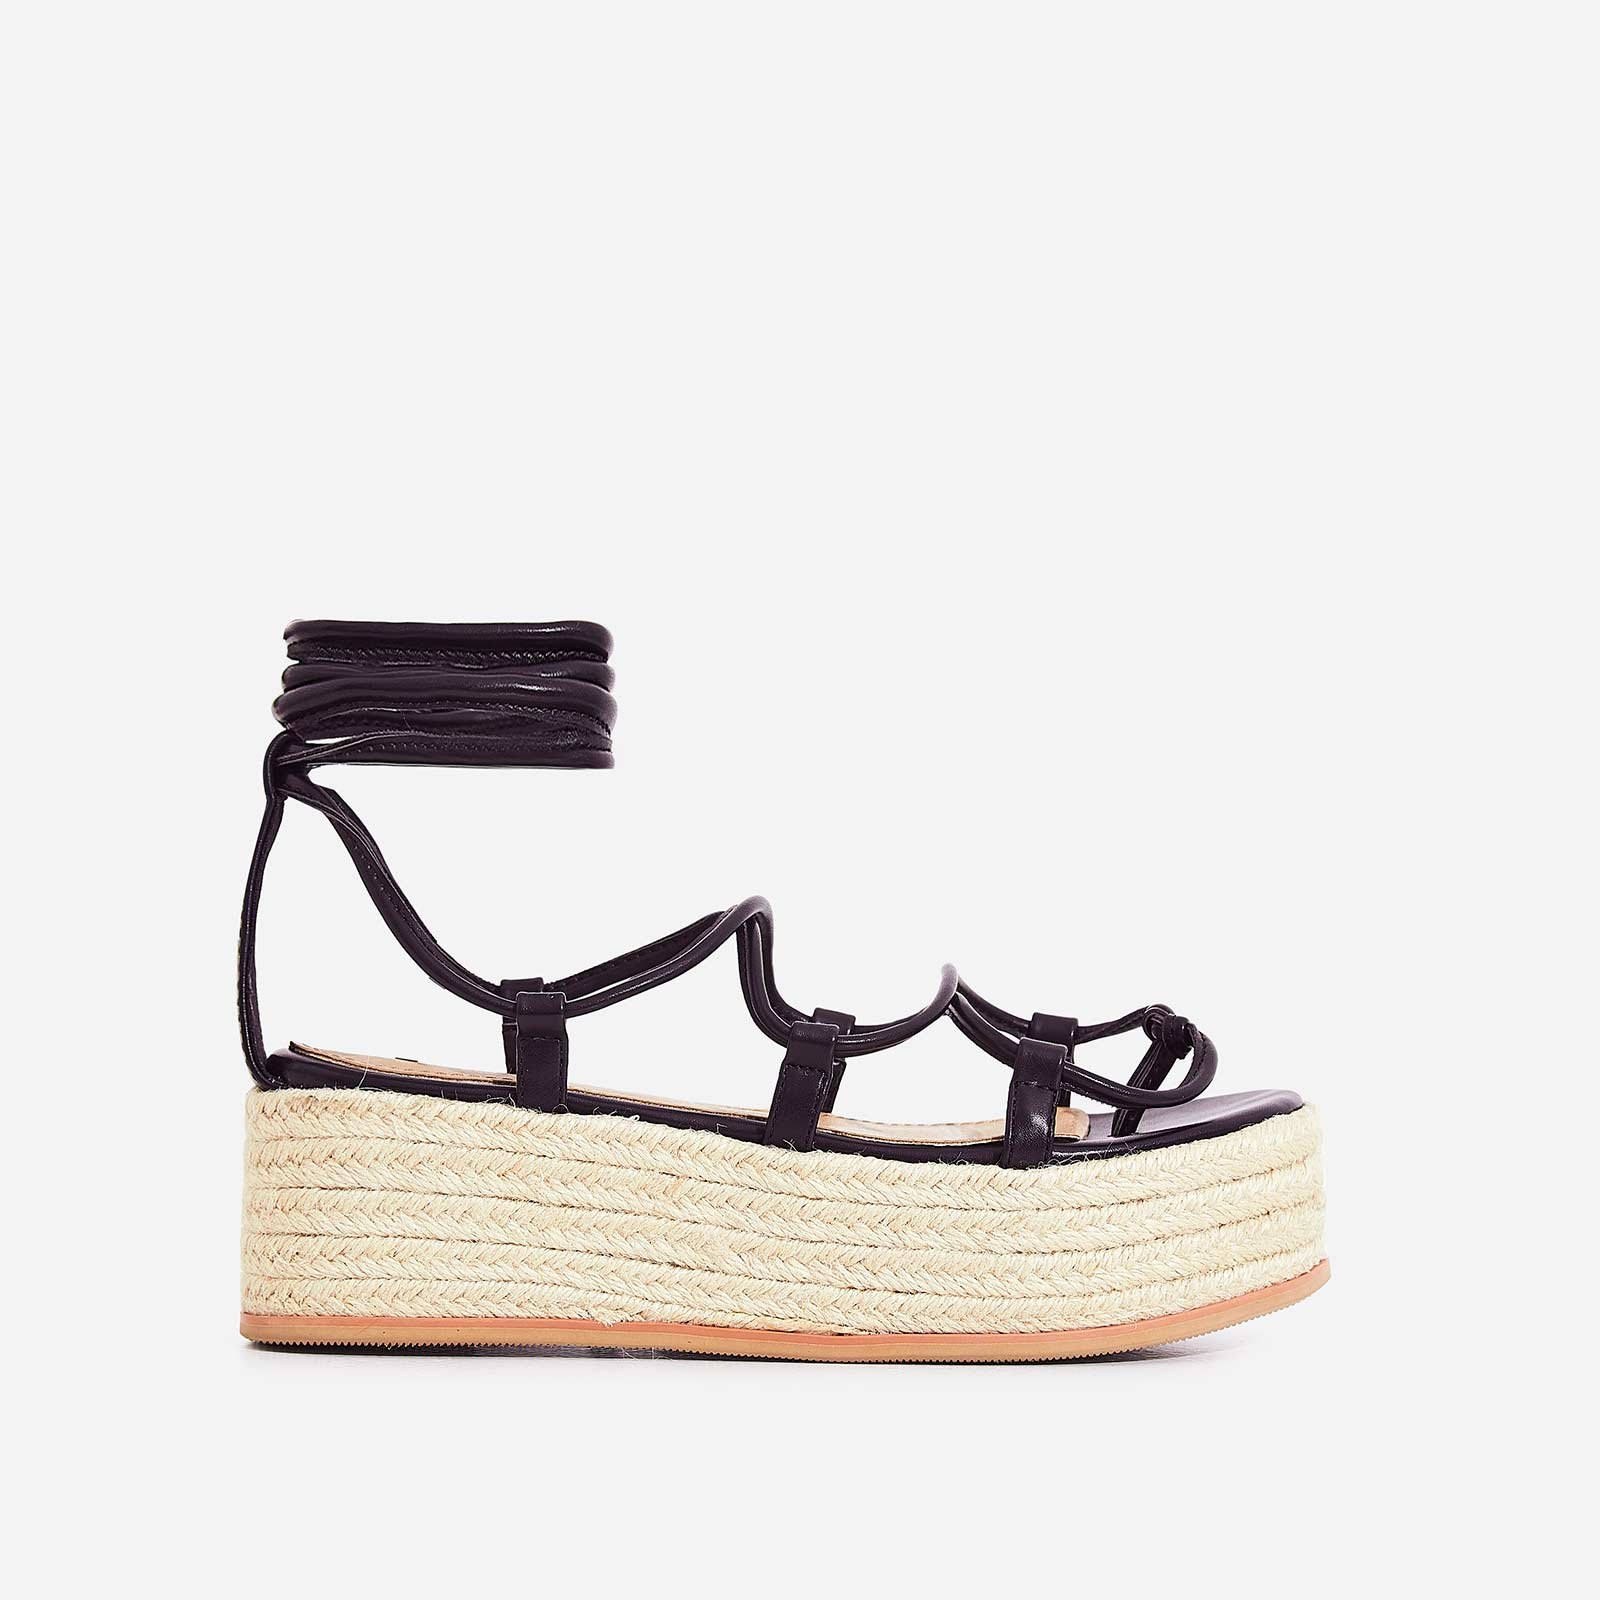 e9a5ec8c5625 Sophina Lace Up Espadrille Flatform Sandal In Black Faux Leather